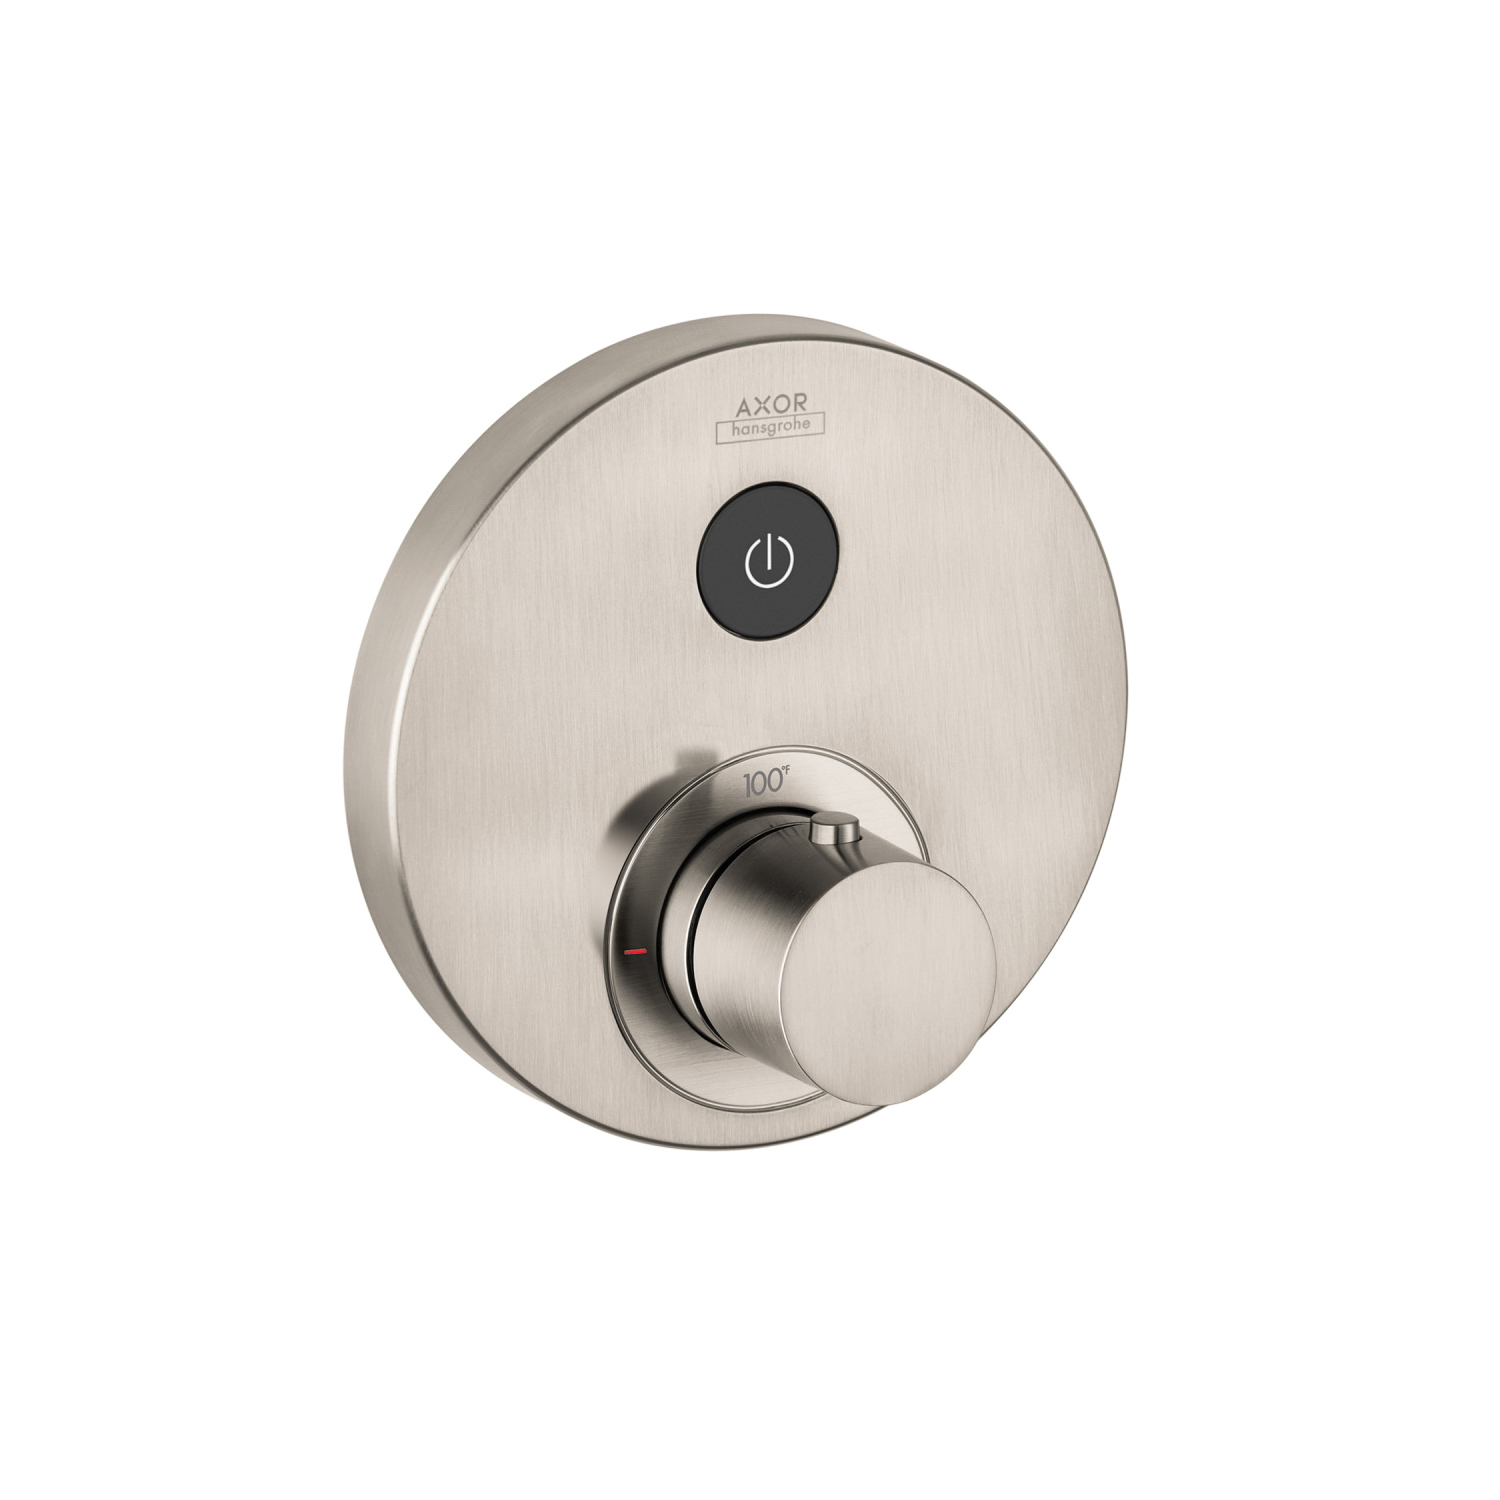 Hansgrohe 36722821 Axor ShowerSelect Round Thermostatic Trim, Hand Shower Yes/No: No, Brushed Nickel